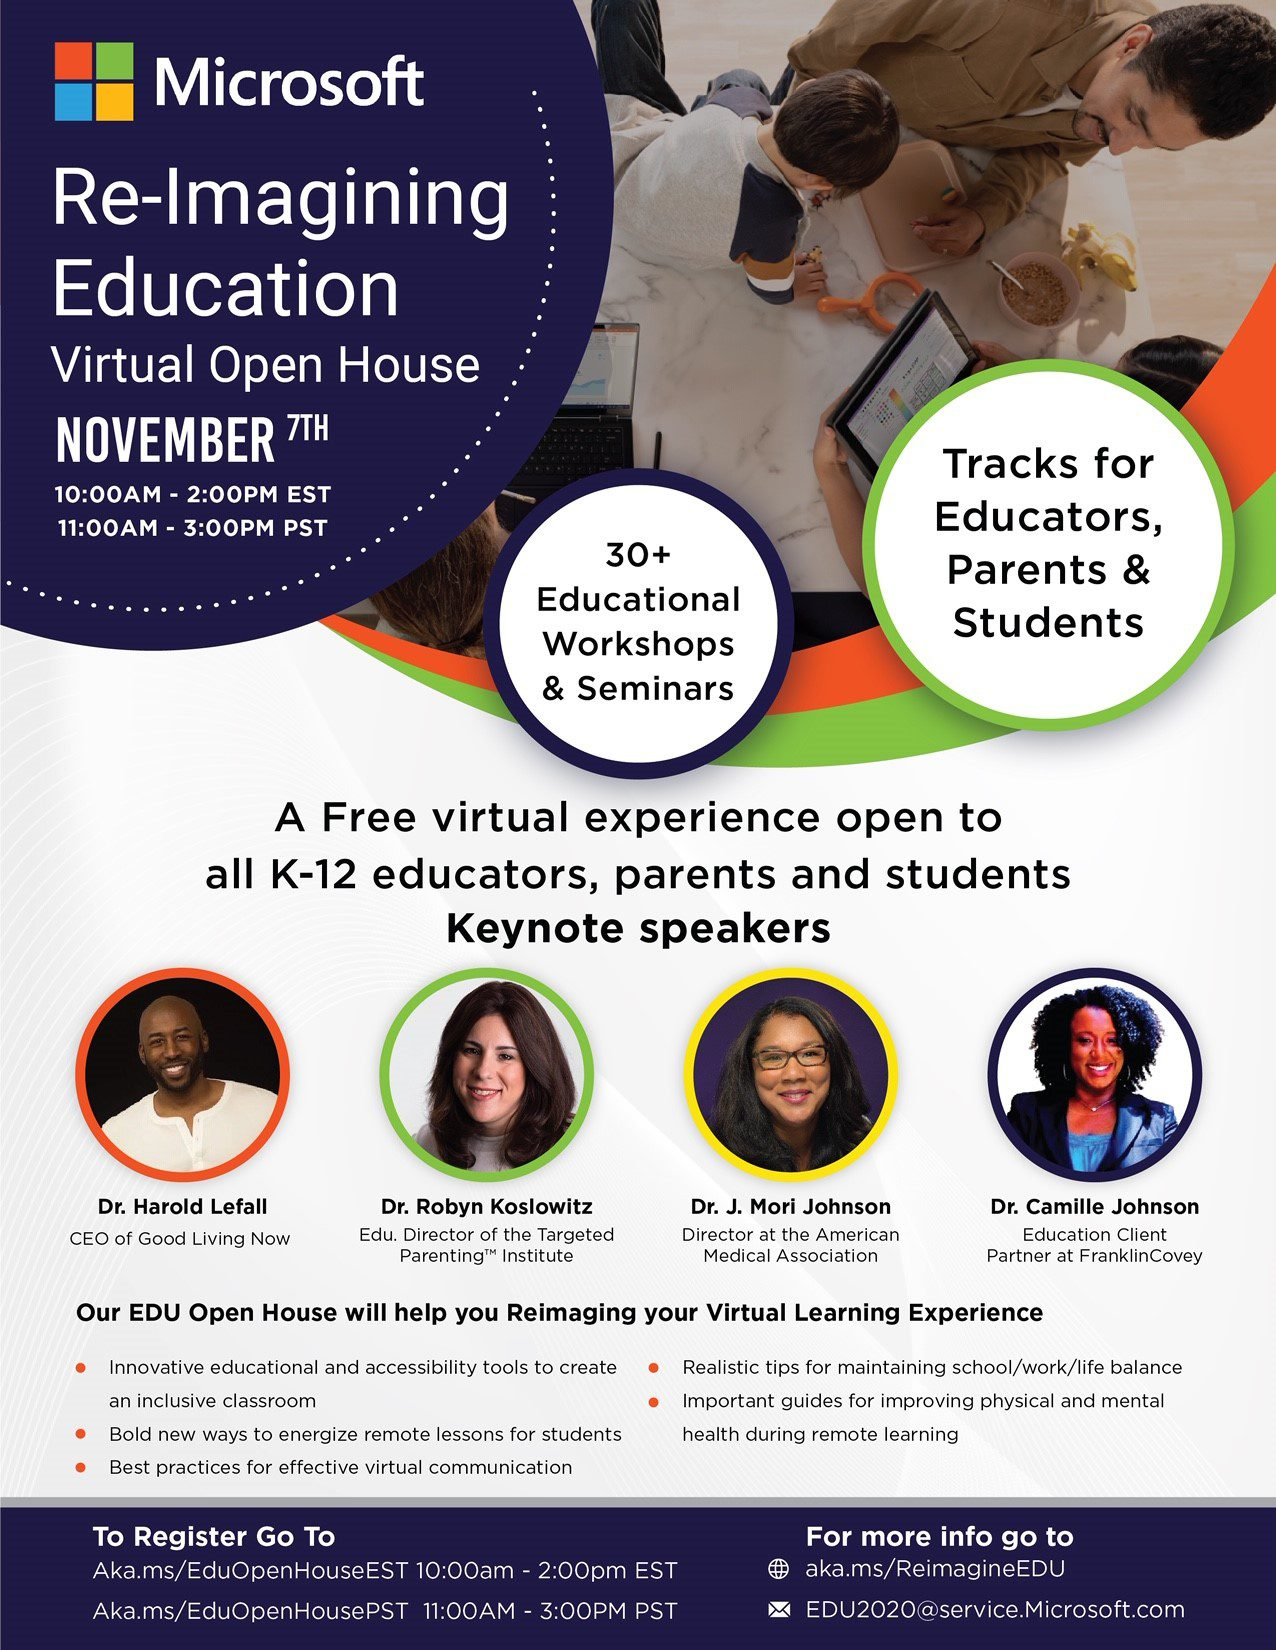 NABSE in partnership with Microsoft presents: Re-Imagining Education